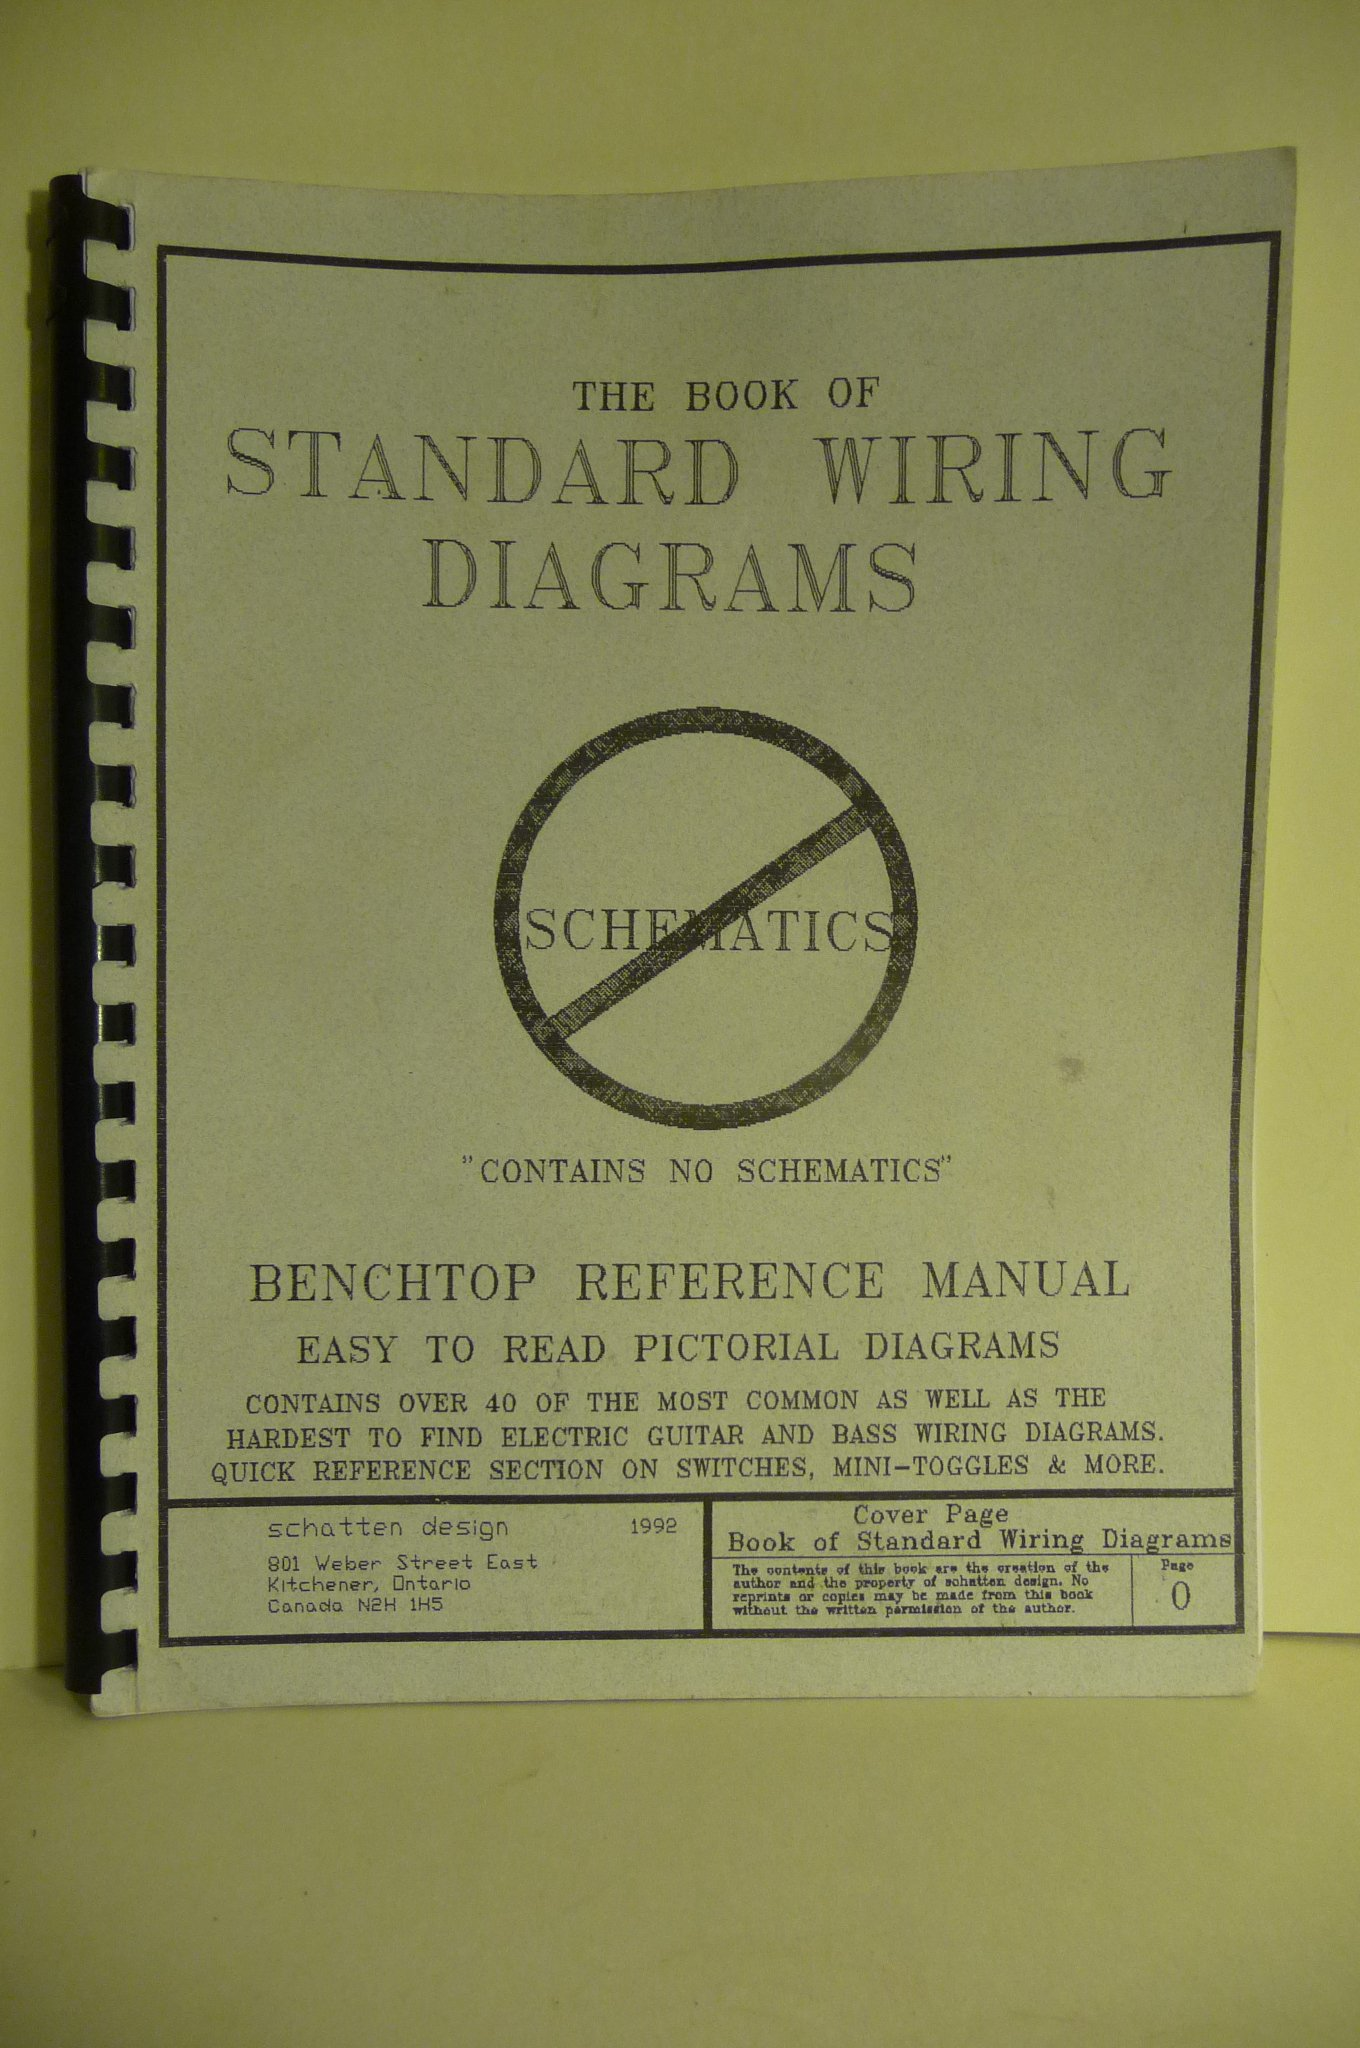 The New Book of Standard Wiring Diagrams: Benchtop Reference Manual: Les  Schatten: Amazon.com: BooksAmazon.com